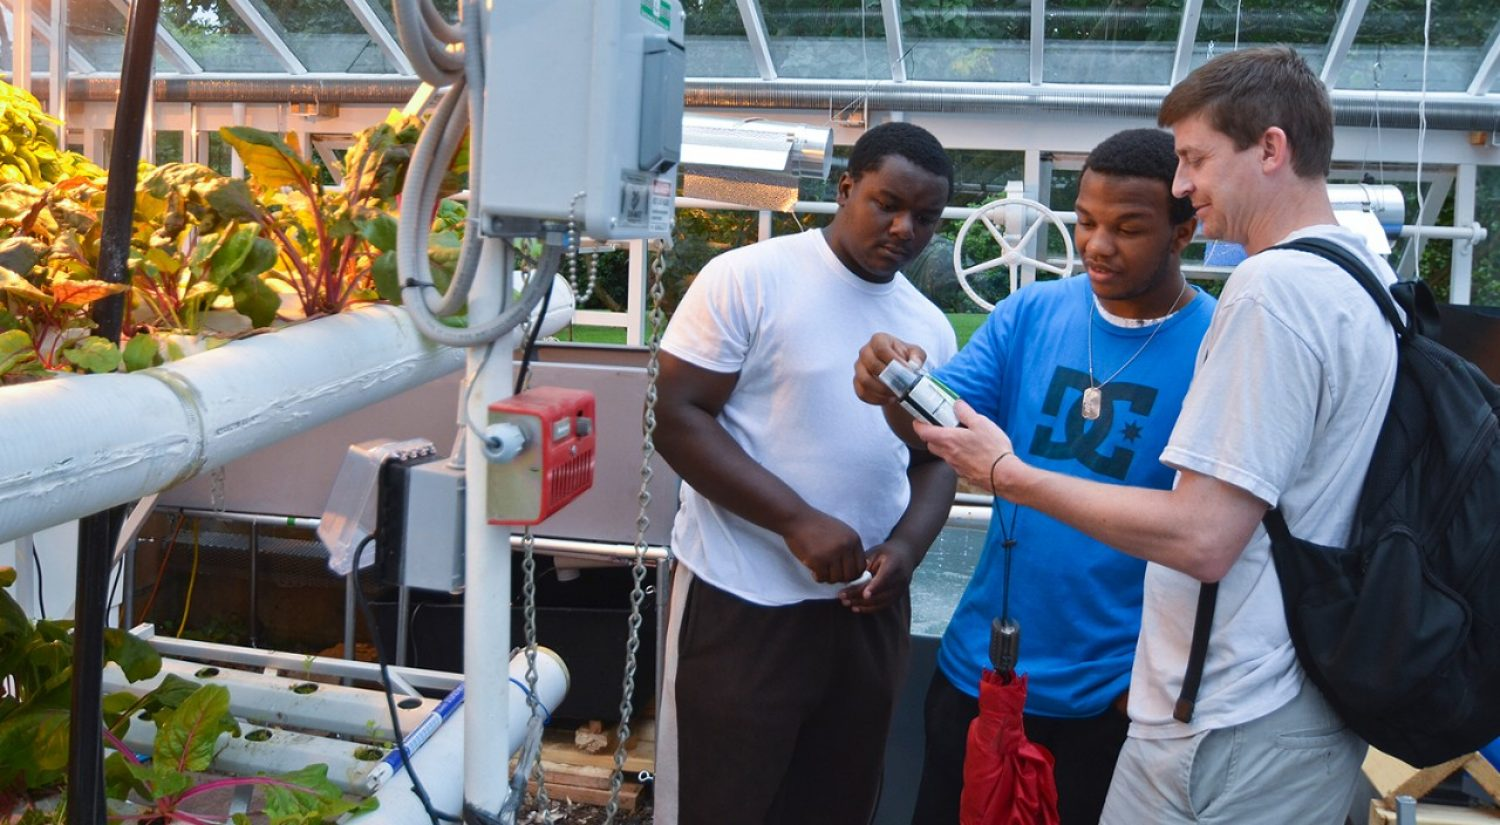 Boston College Professor of Science Education Mike Barnett (r) and colleagues report a number of positive results for students who participated in an afterschool science enrichment curriculum they developed using hydroponic gardening techniques.